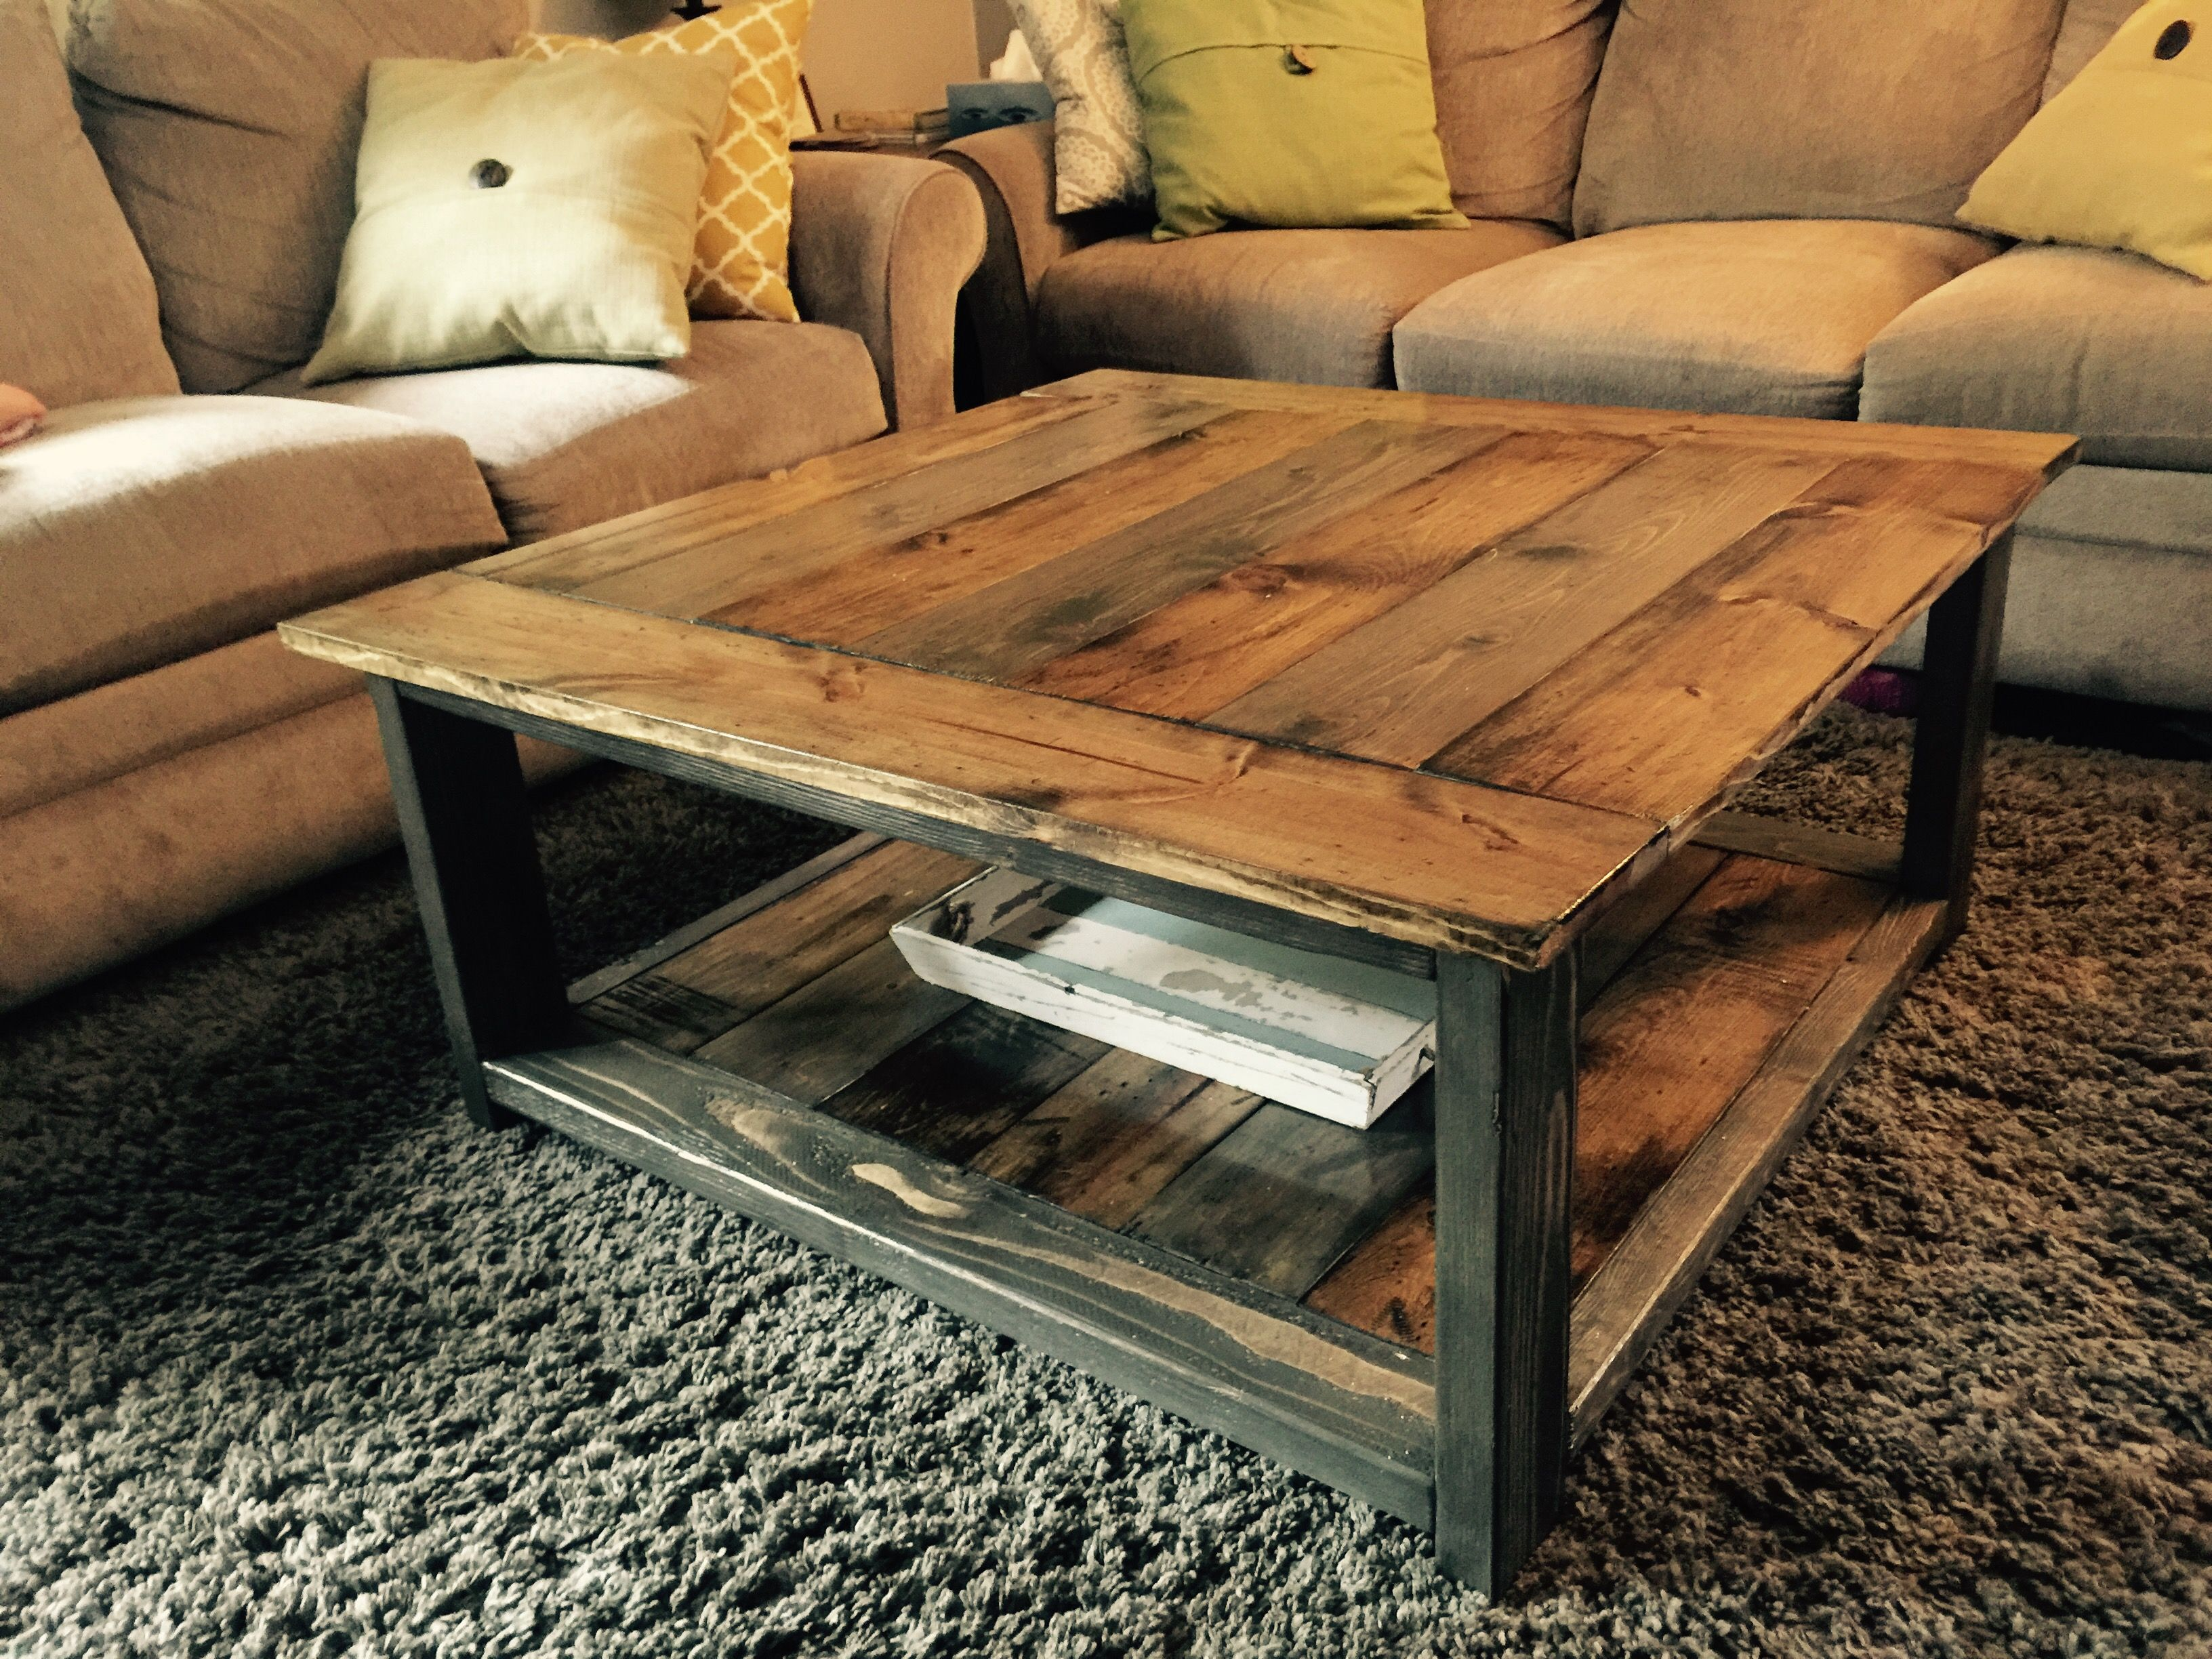 Rustic Xless Coffee Table Do It Yourself Home Projects From Ana